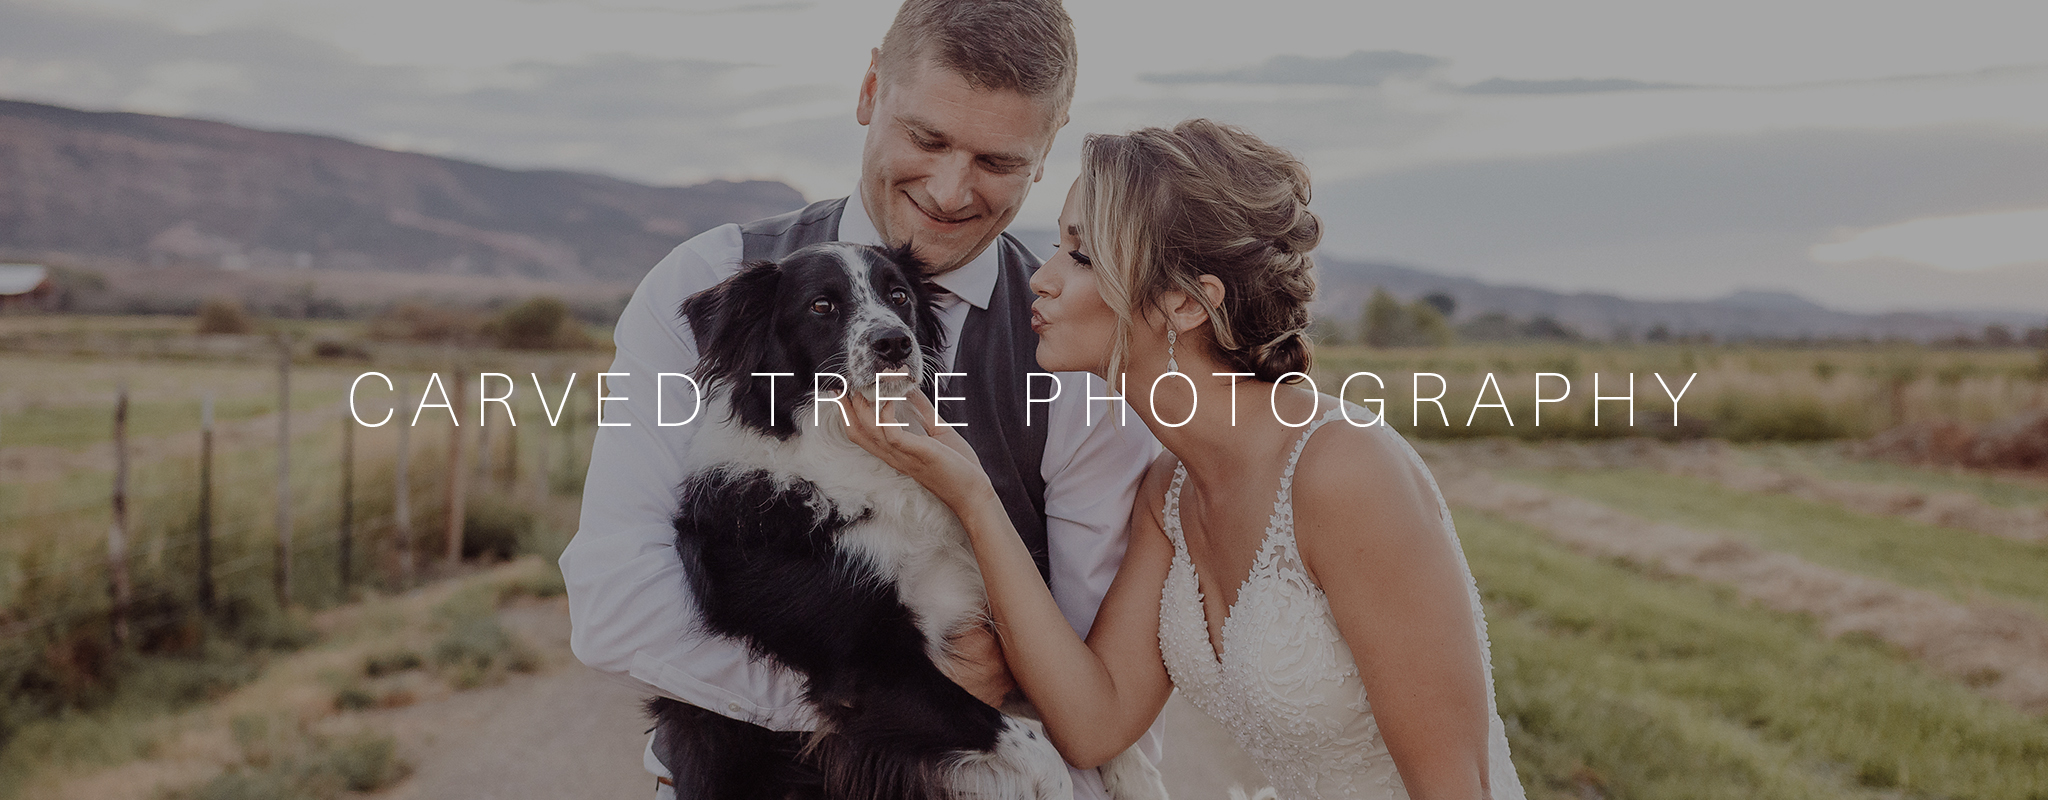 Carved Tree Photography | Wedding photographer in Grand Junction, Colorado featured on WED West Slope - a directory for wedding vendors.